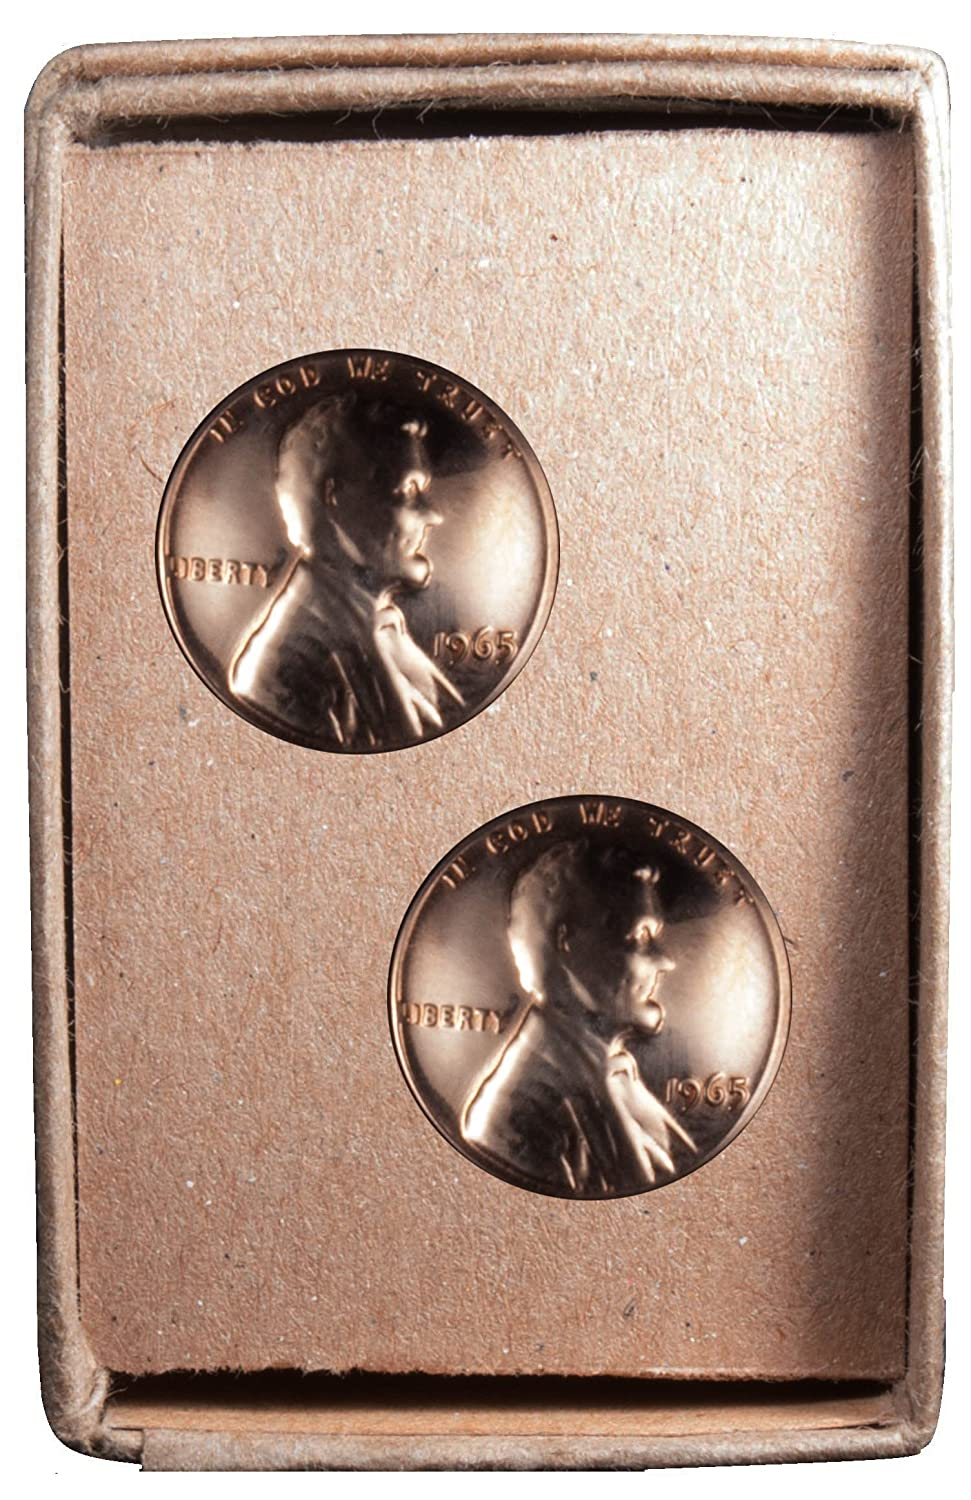 US Copper Penny Cuff Links www.commoncentsjewelry.com 1959PennyCuff